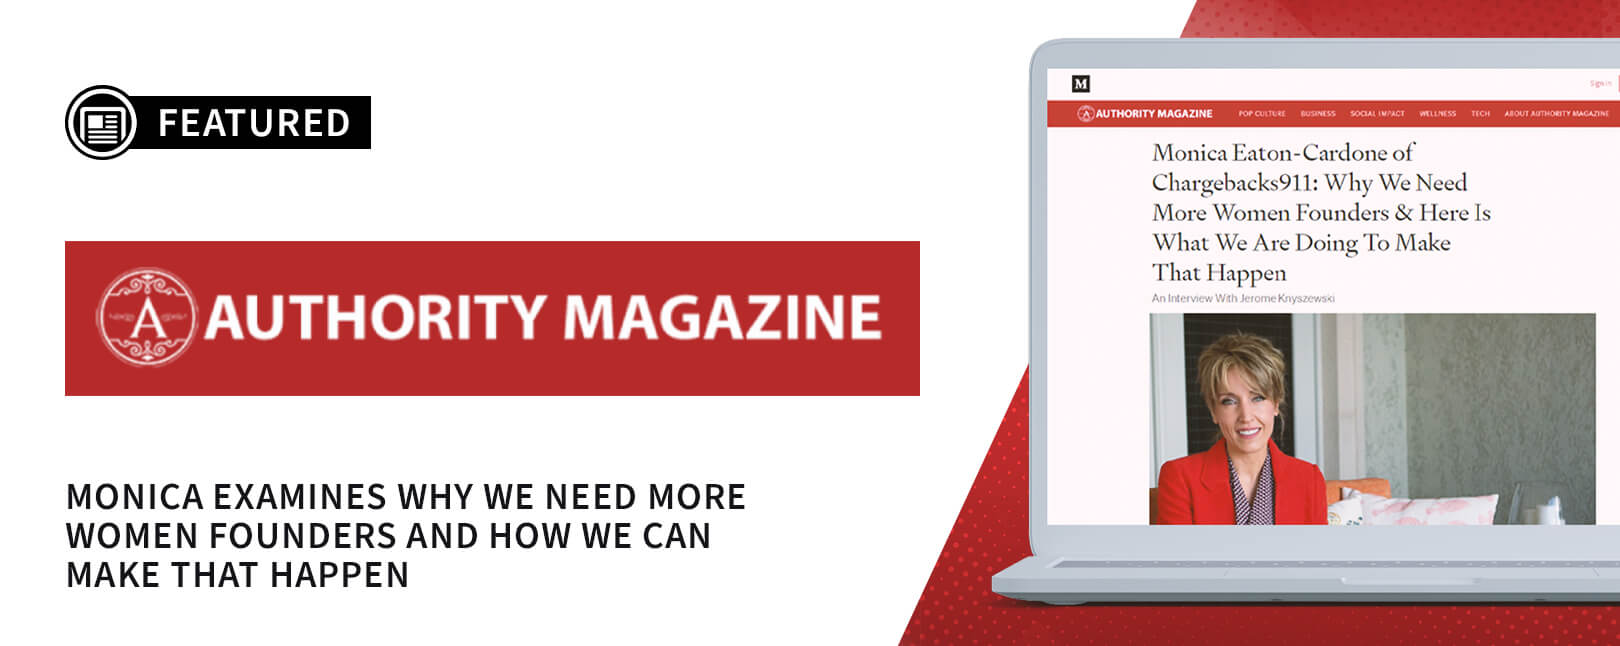 Chargebacks911® COO Interviewed by Authority Magazine